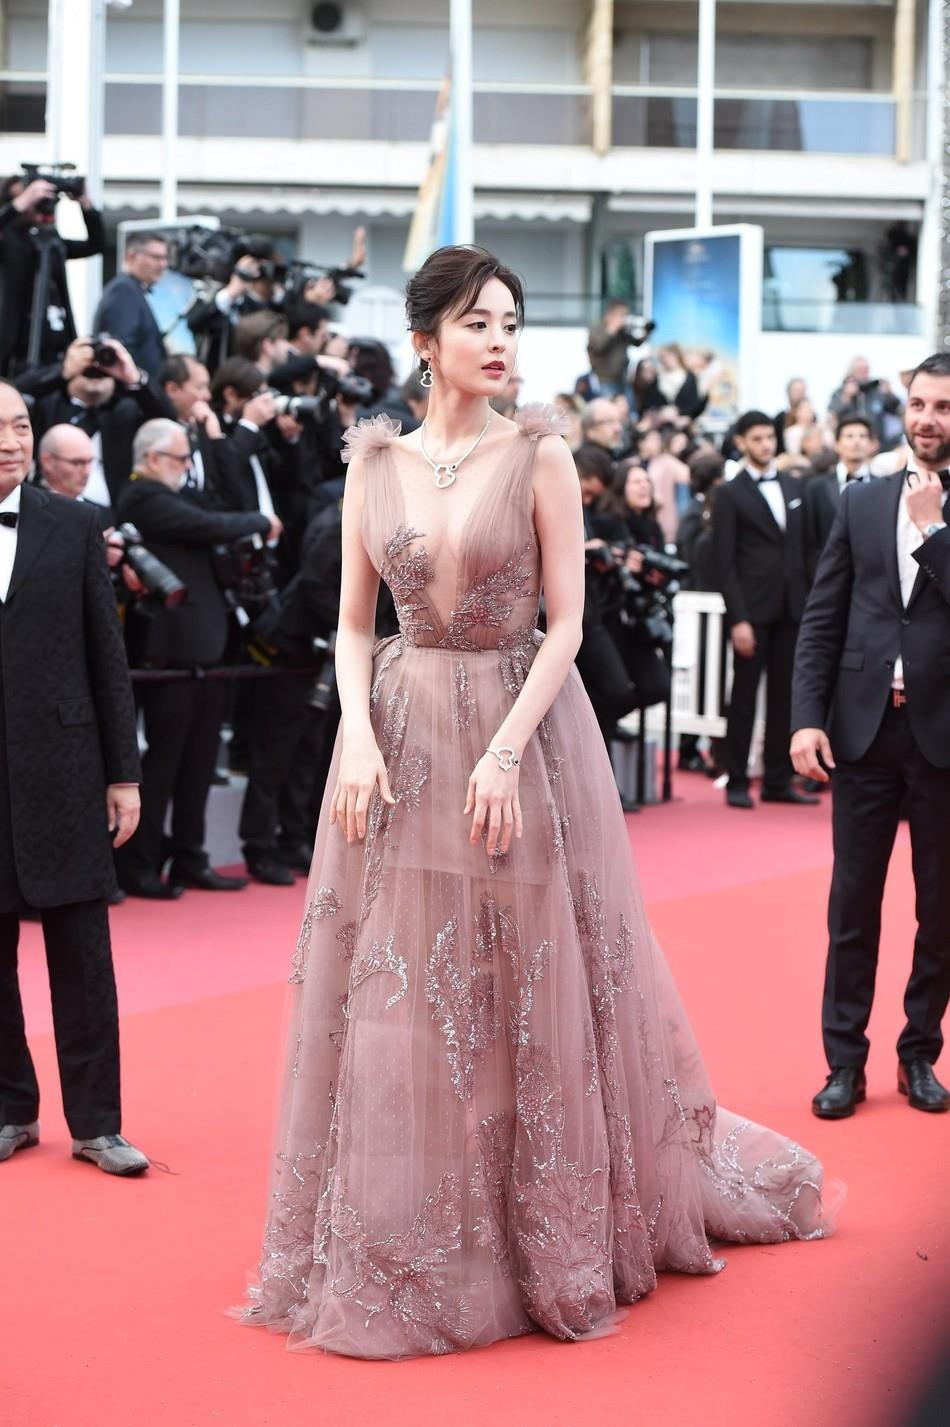 Lien hoan phim Cannes 2019 anh 7